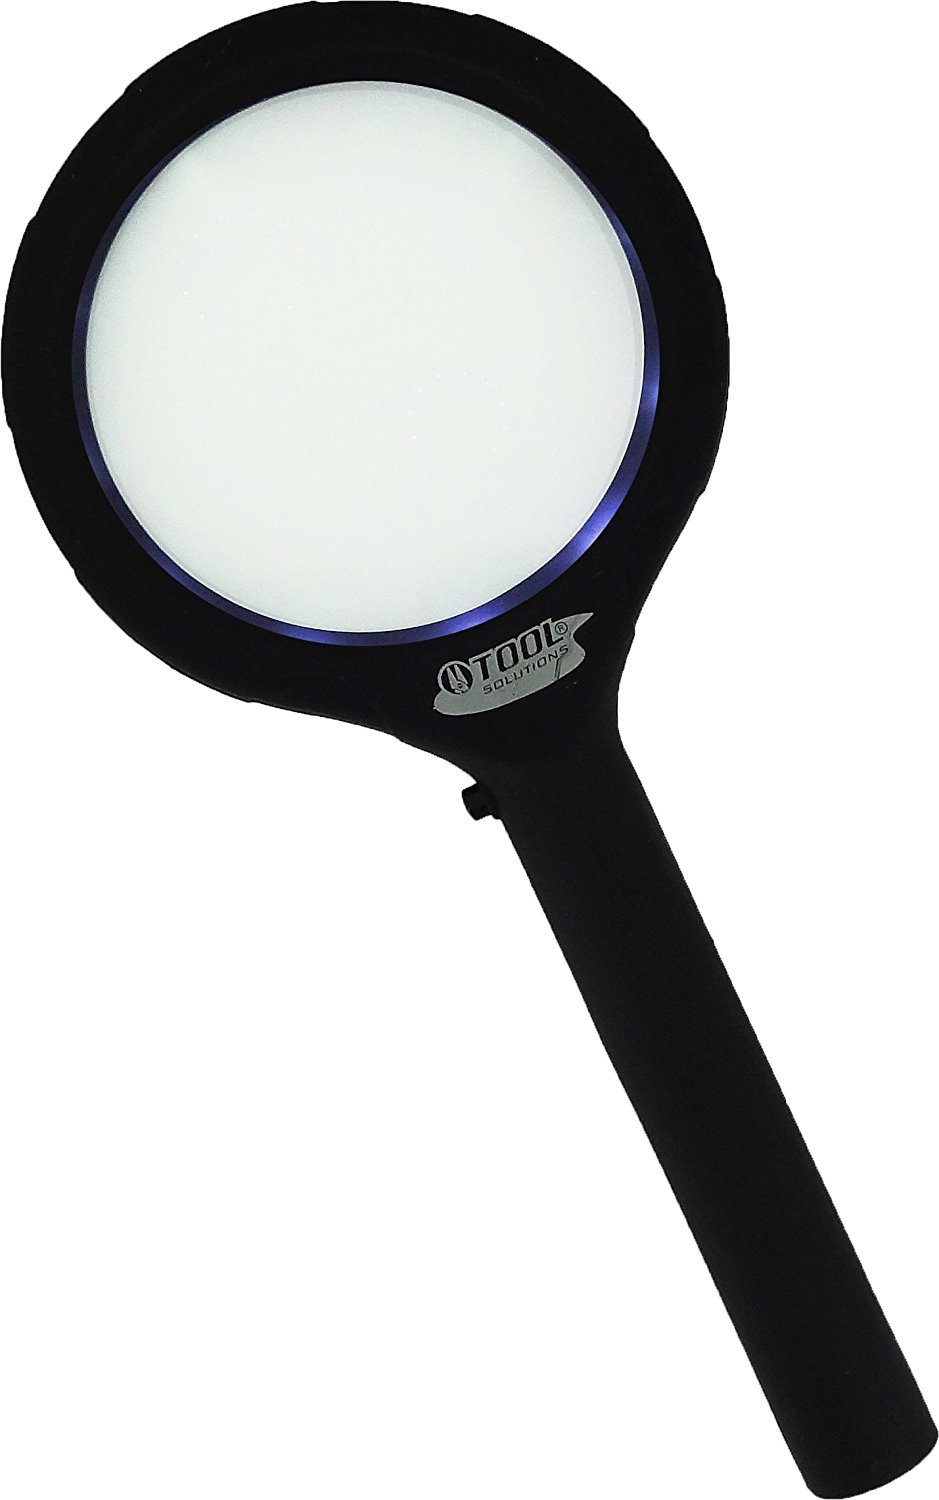 WCI ML1224-BOX 3.4 Inches Lumifier PRO 3X Power 3 COB LED Brightest Light Handheld XL Magnifier Pack of 2